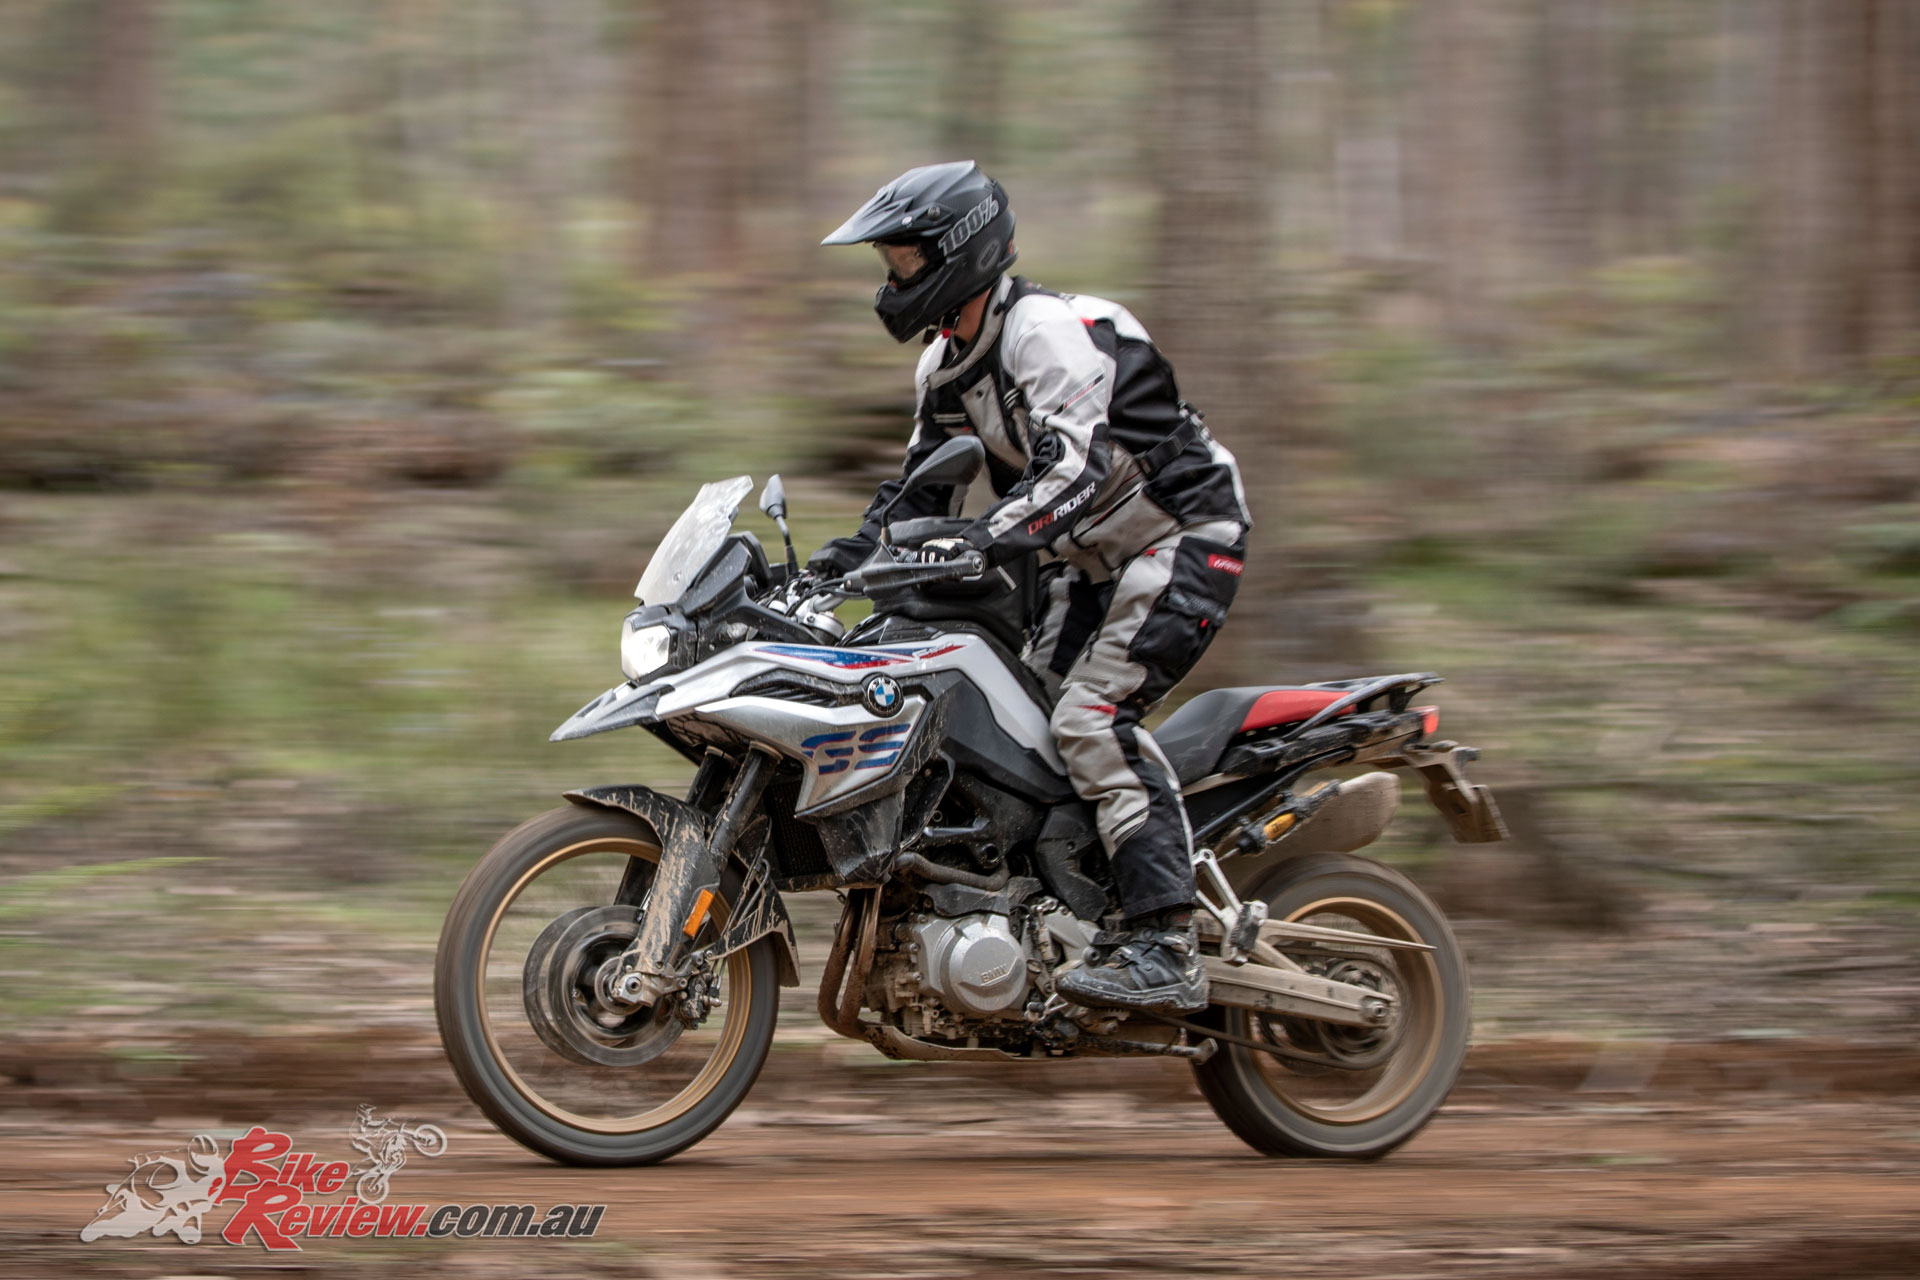 The F 850 GS produces 95hp, while boasting DCT and ASC